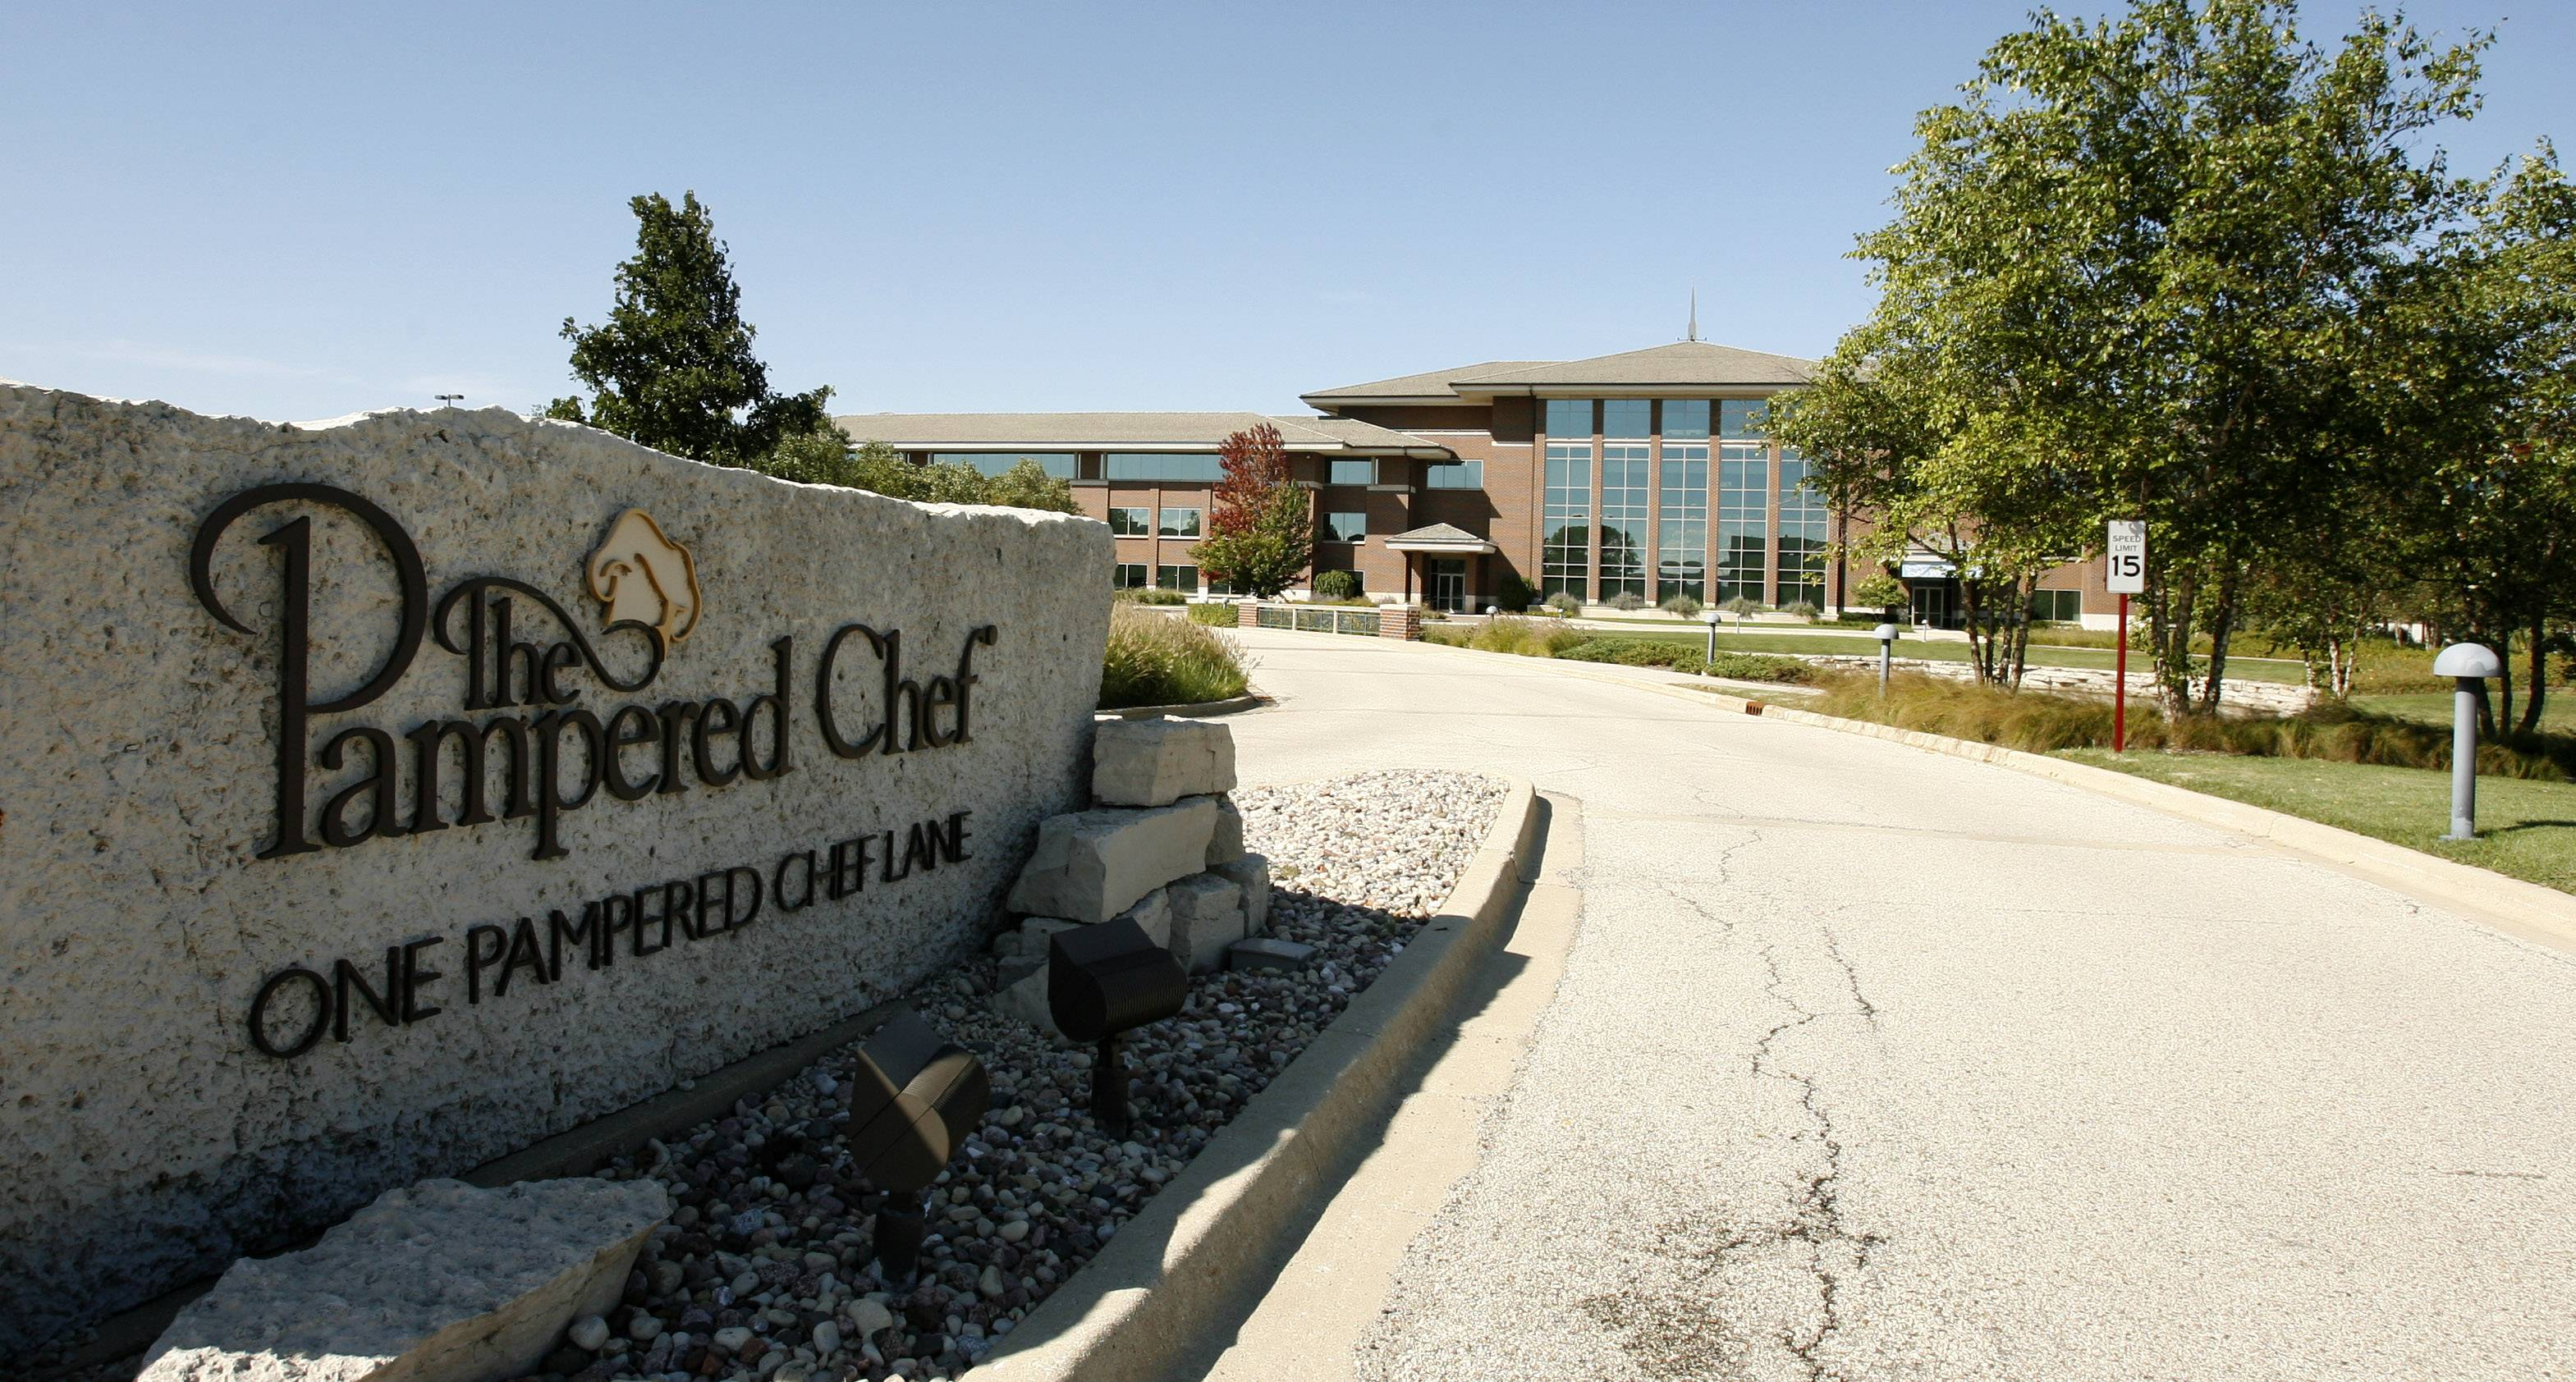 The Pampered Chef headquarters in Addison.